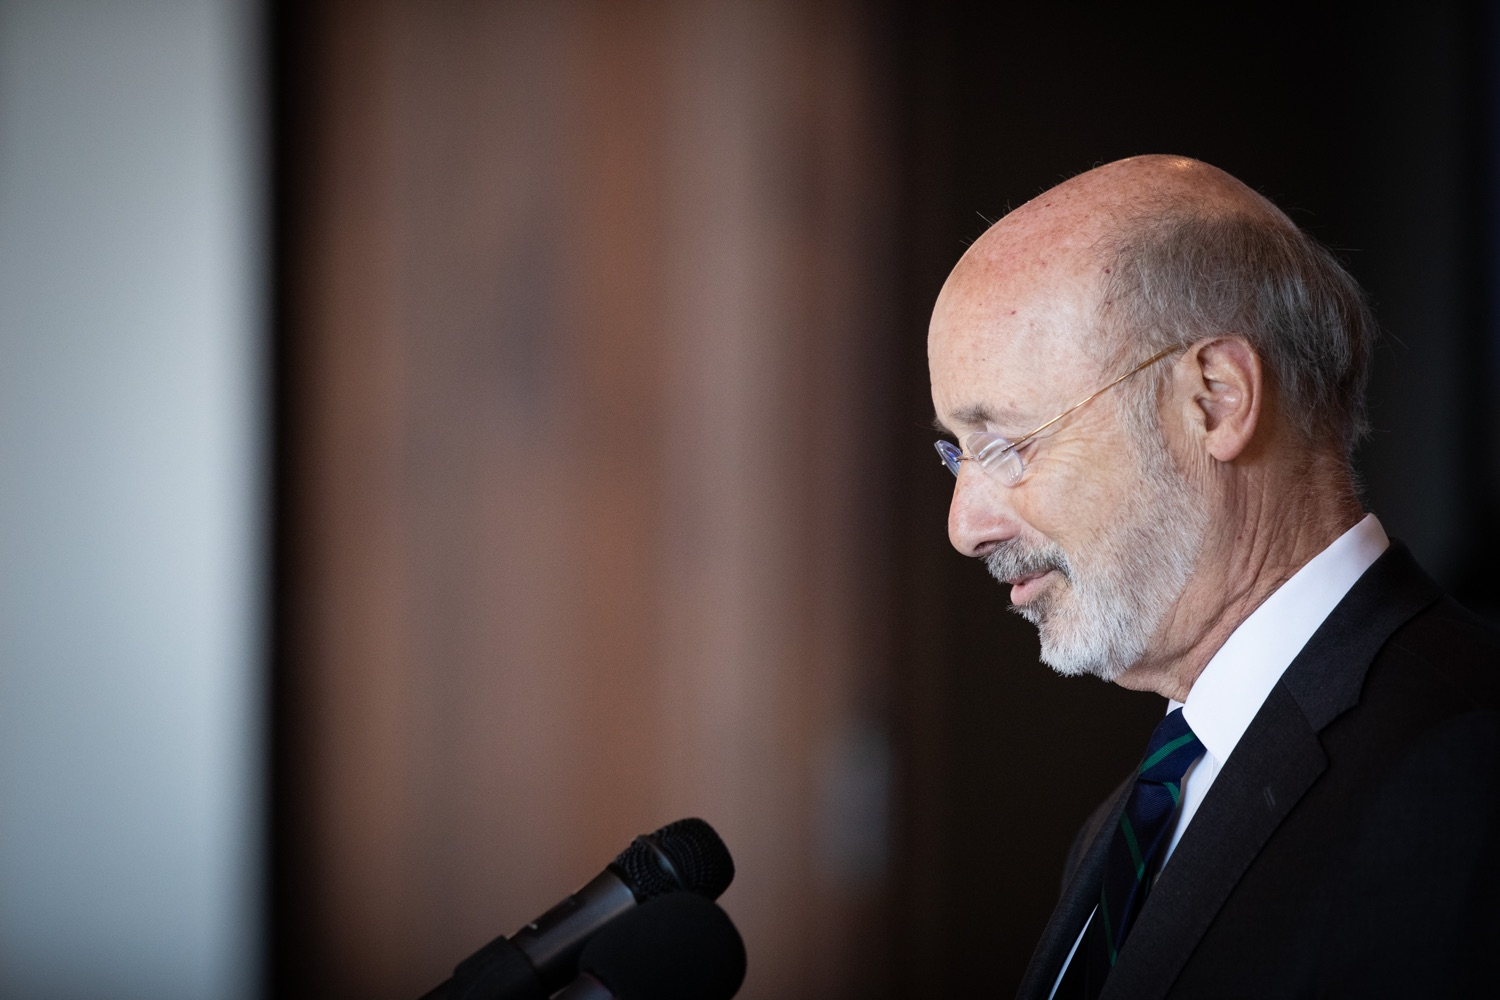 "<a href=""http://filesource.abacast.com/commonwealthofpa/photo/17467_gov_opioids_dz_007.JPG"" target=""_blank"">⇣ Download Photo<br></a>Boalsburg, PA  Governor Tom Wolf addressing the summit. Governor Tom Wolf today kicked off his administrations first Opioid Command Center Opioid Summit: Think Globally, Act Locally, which brought together 200 individuals helping their communities fight the opioid crisis, including community organizations, non-profits, schools, health care workers, addiction and recovery specialists, and families affected by the opioid crisis.  Tuesday, October 1, 2019"